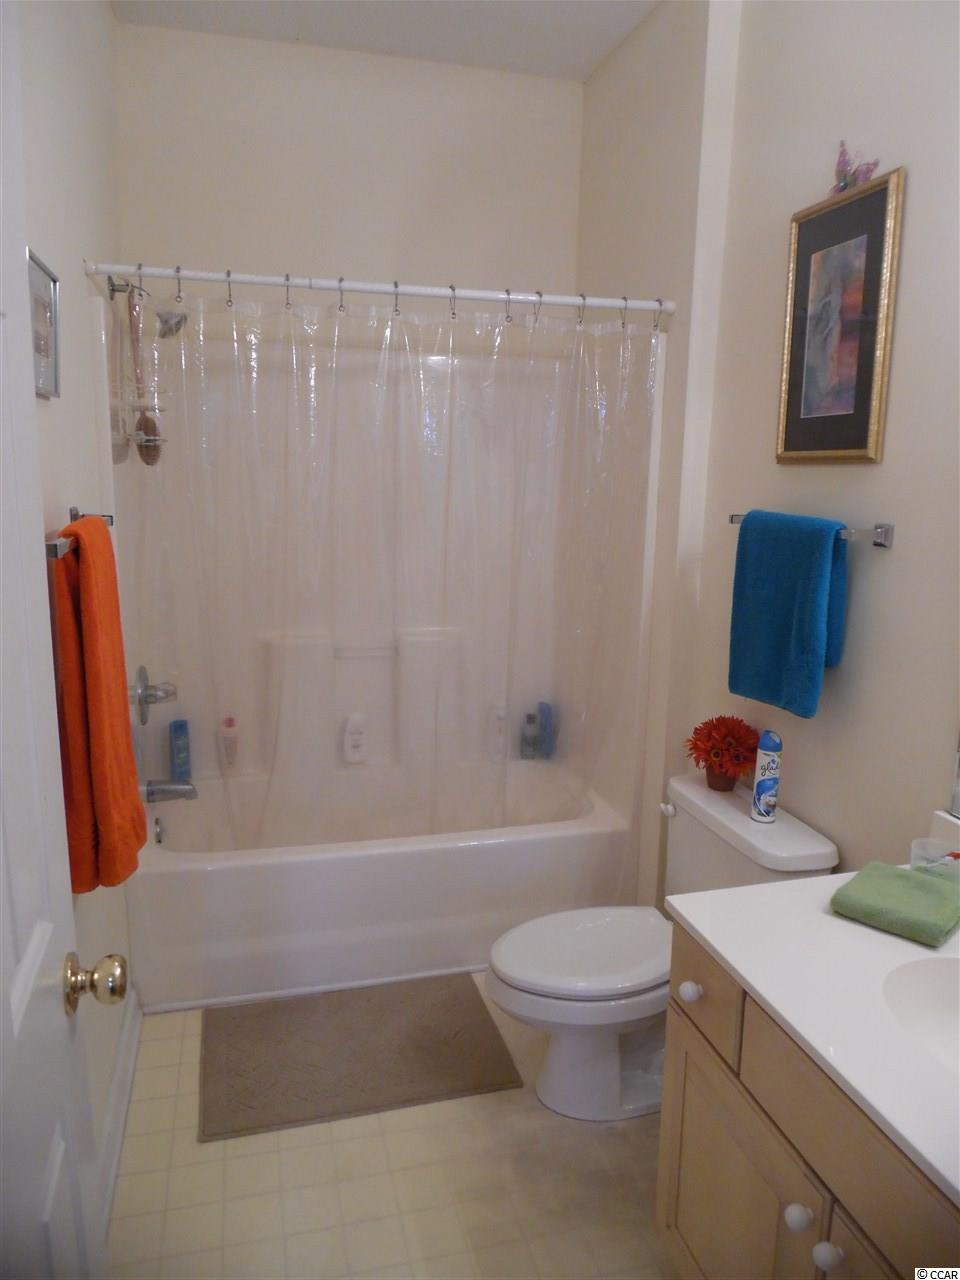 2 bedroom  at 5212 Sweetwater Blvd